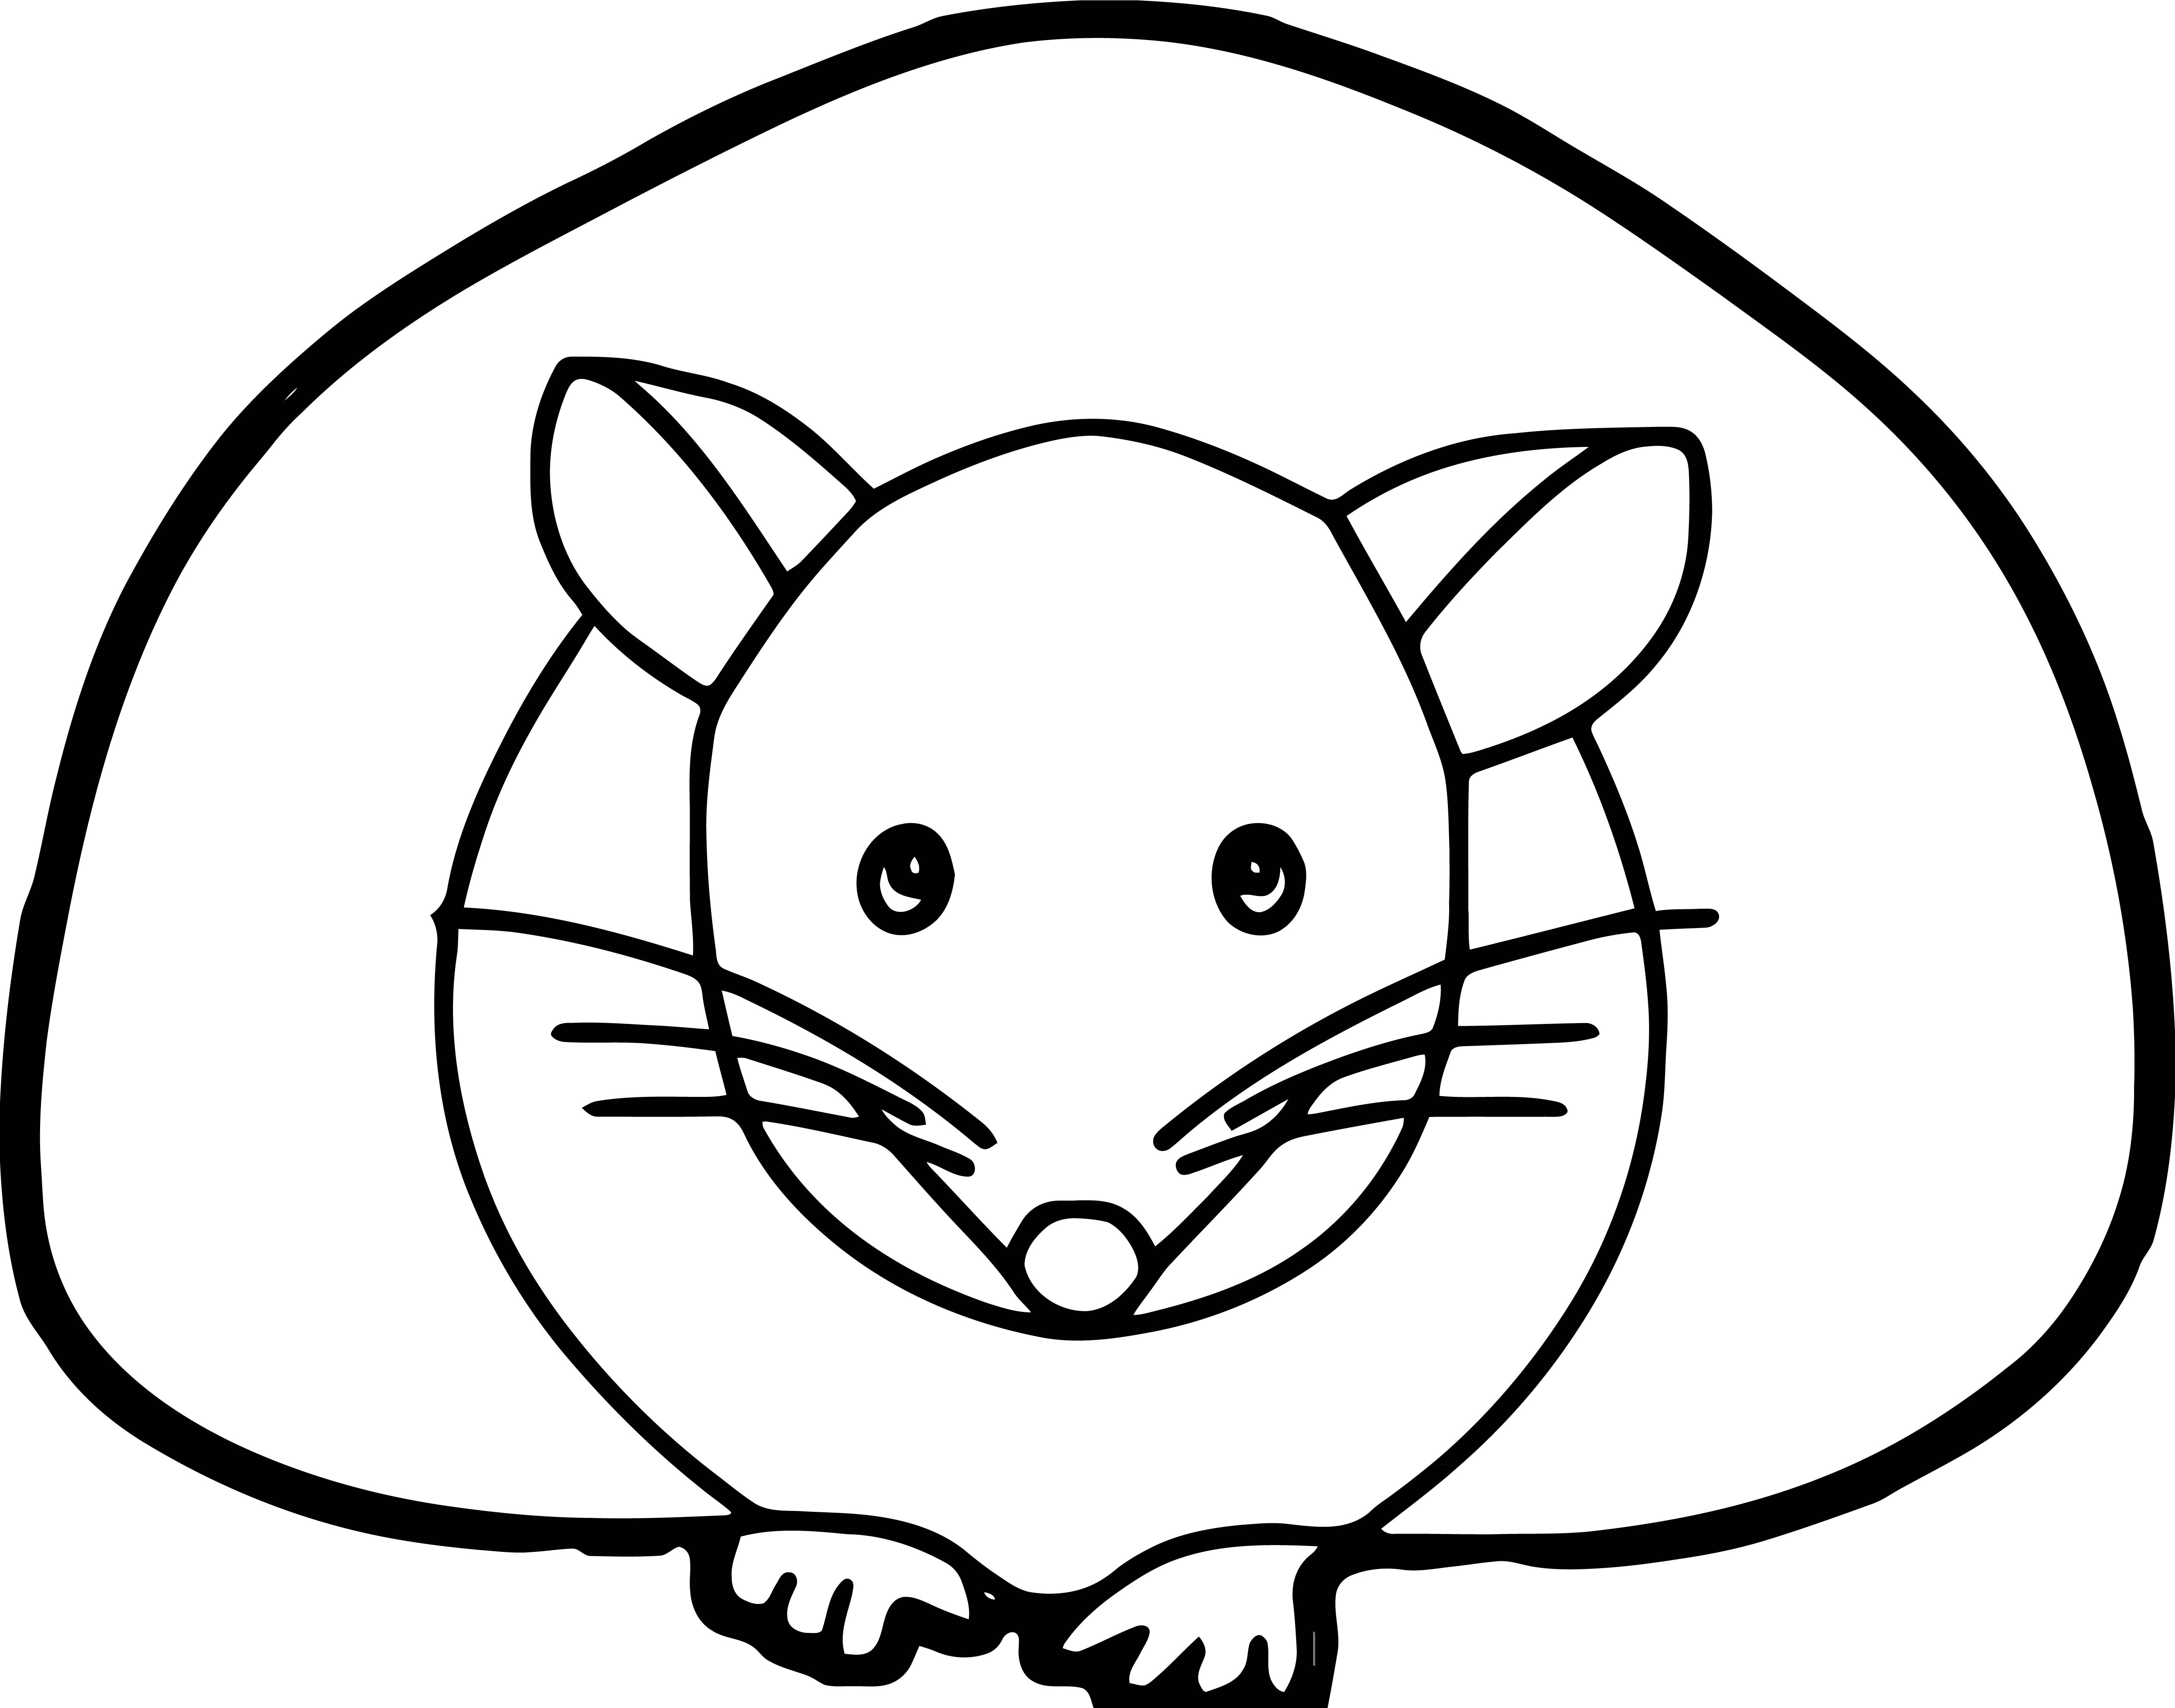 Mouse Jpeg Coloring Page 11